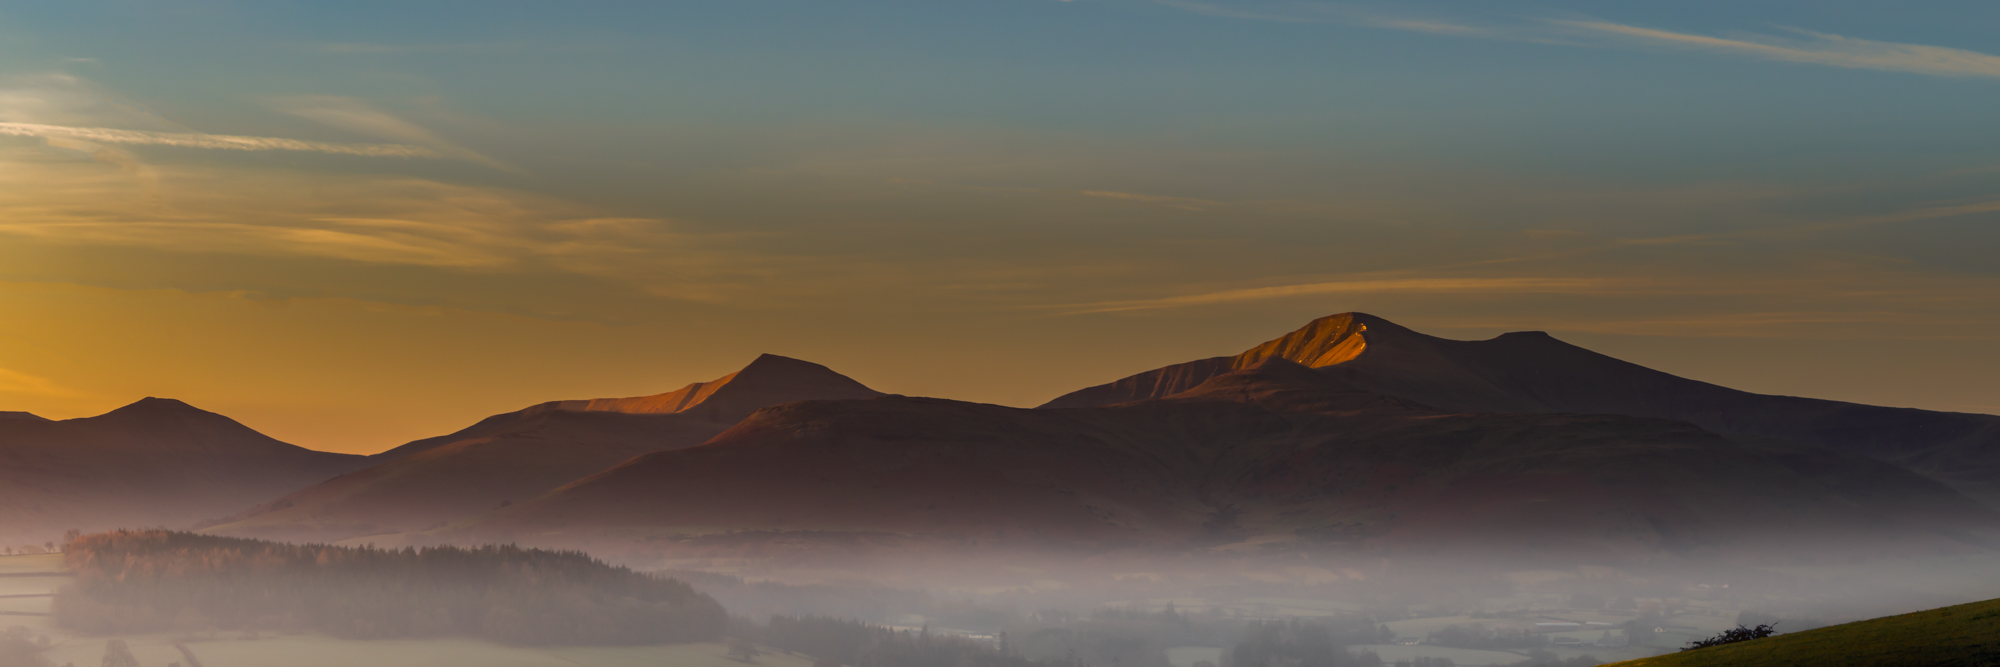 Pen-Y-Fan Massif sunrise, Brecon Beacons